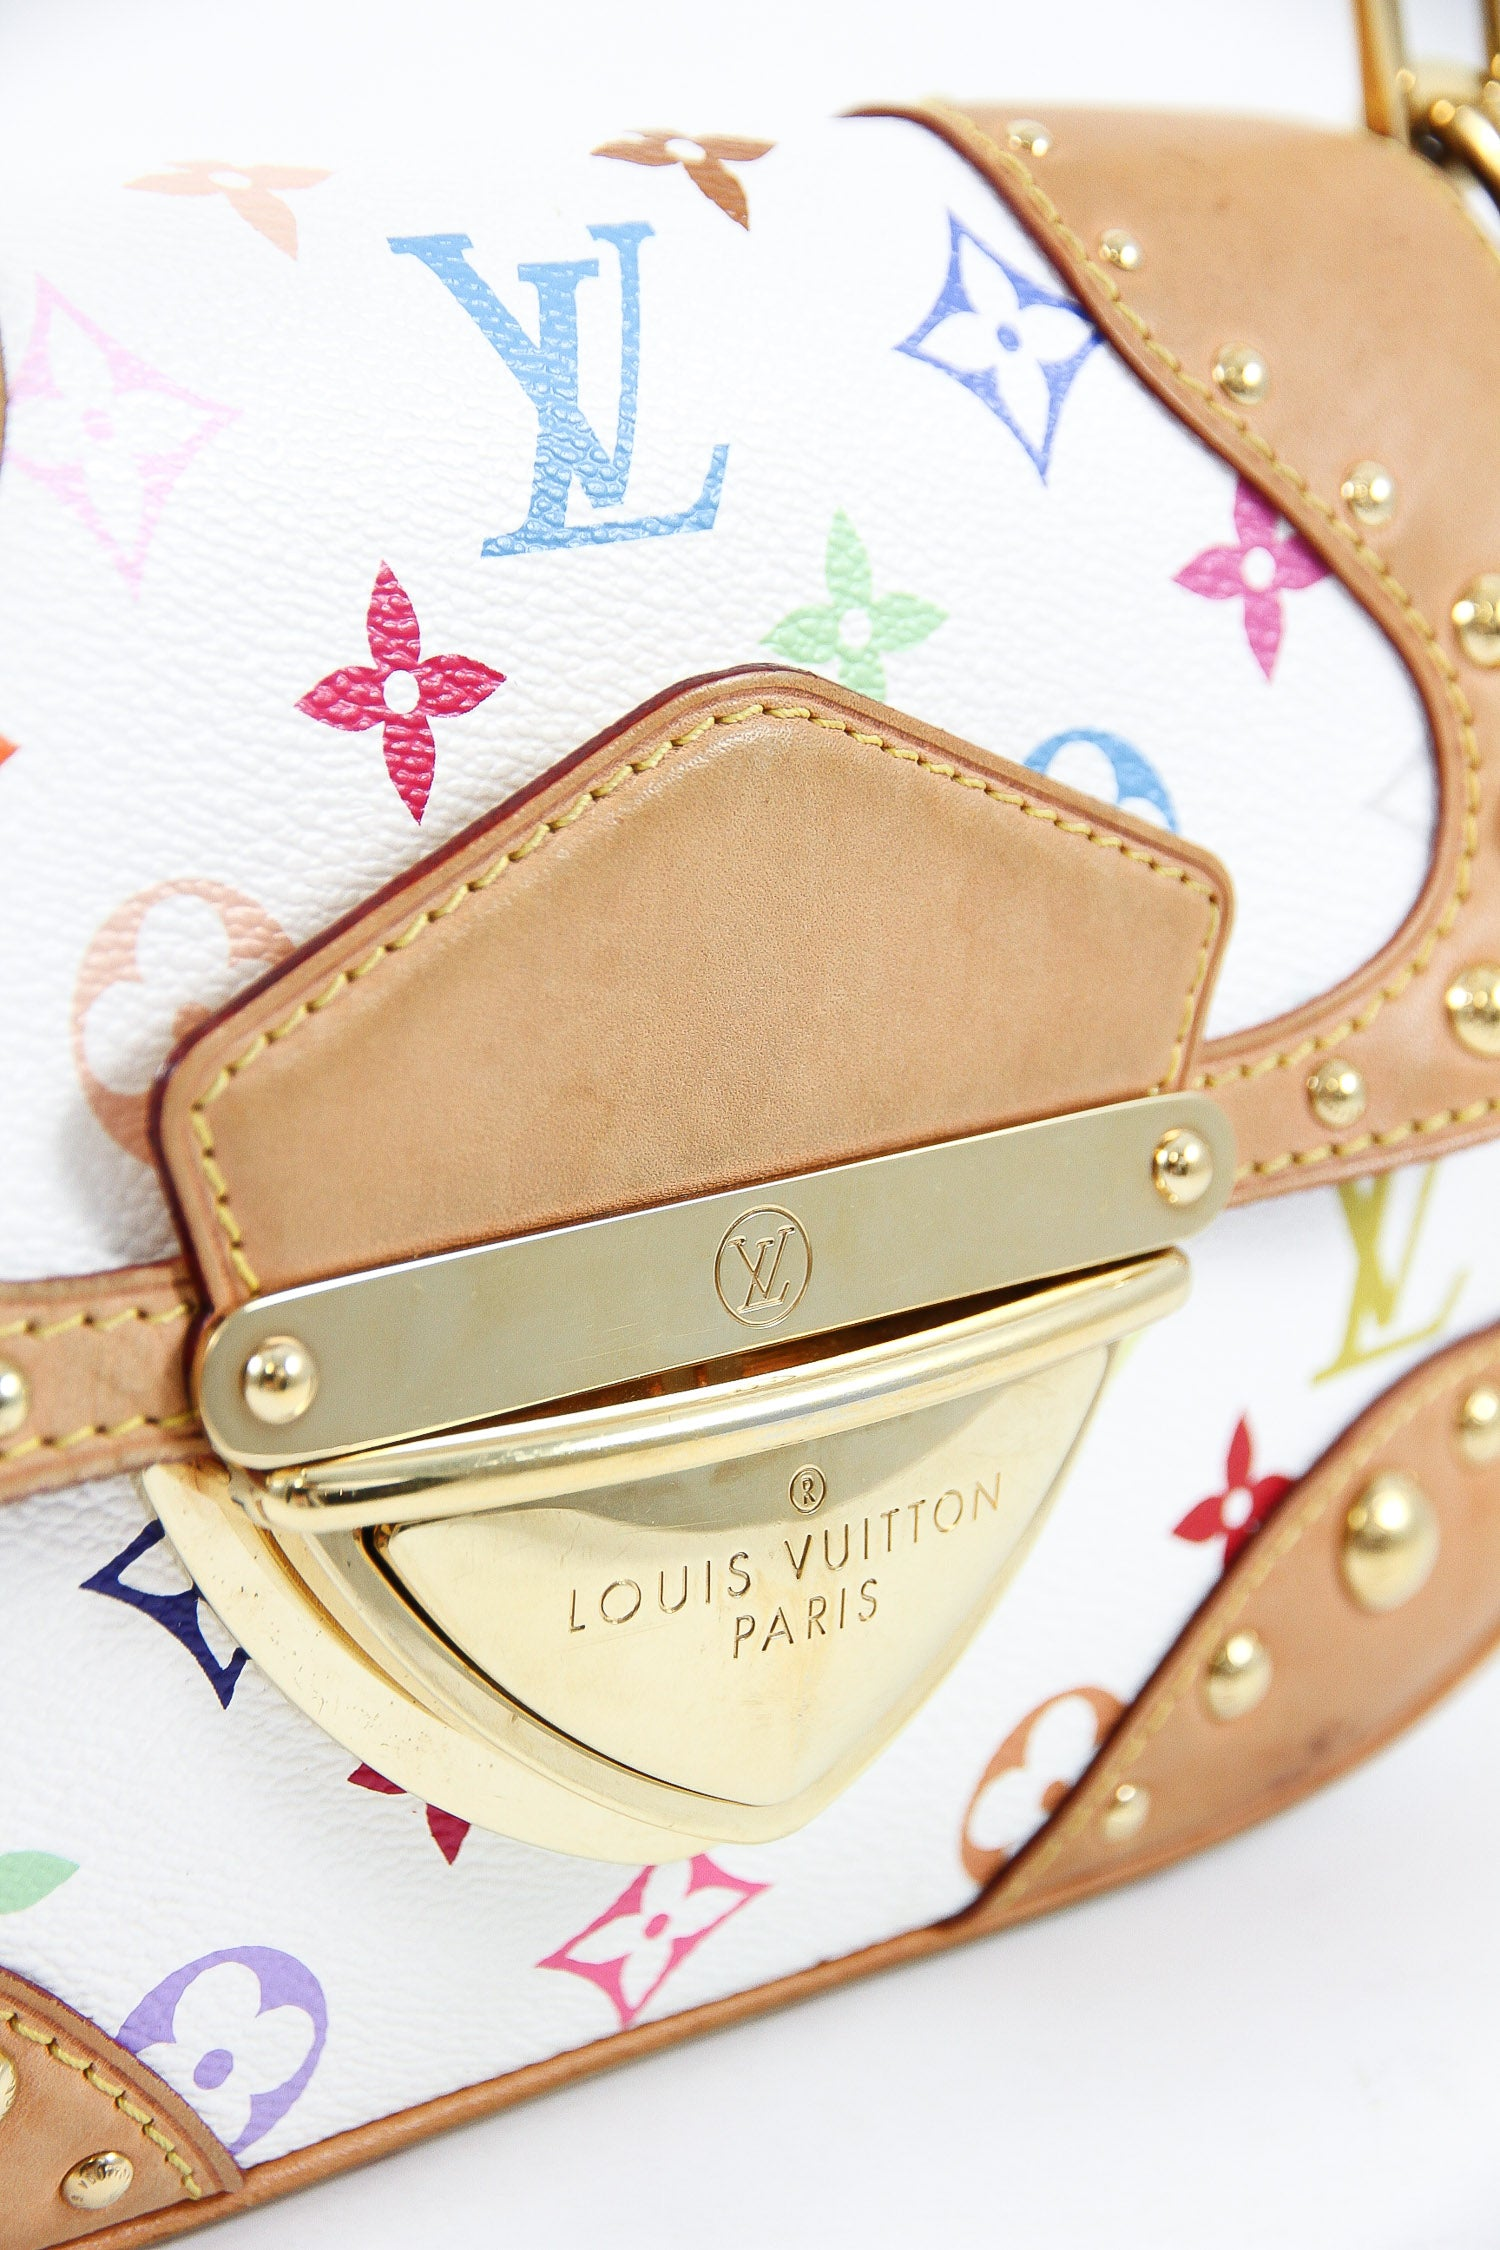 Louis Vuitton White Multicolore Marilyn Bag